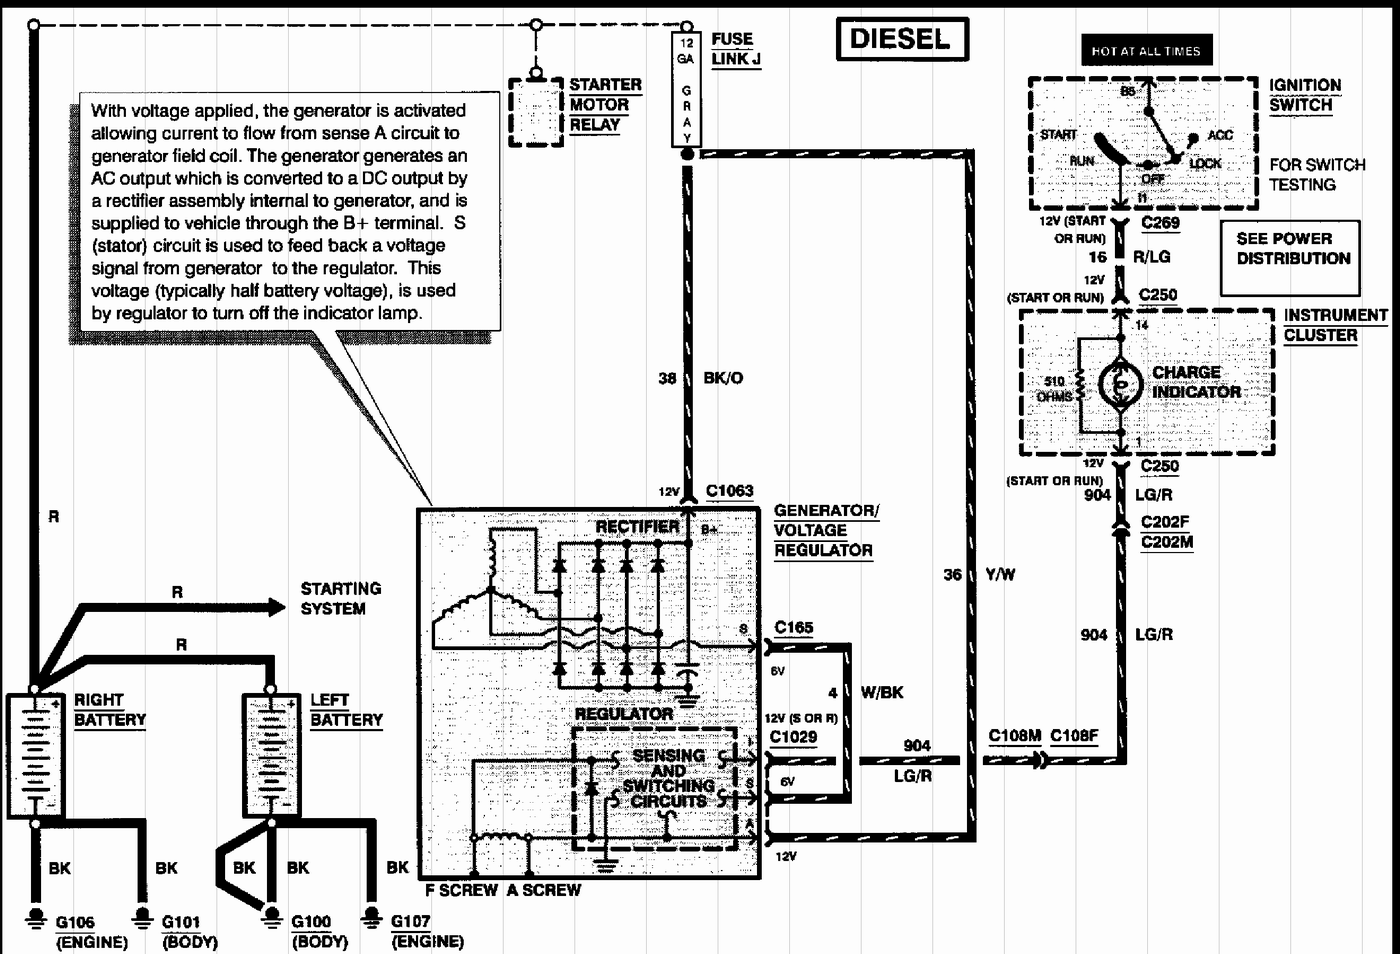 97 powerstroke engine diagram ford 60 powerstroke engine diagram i need a wiring diagram for a 97 f350 7.3 powerstroke with ... | trucks | diagram, powerstroke ...